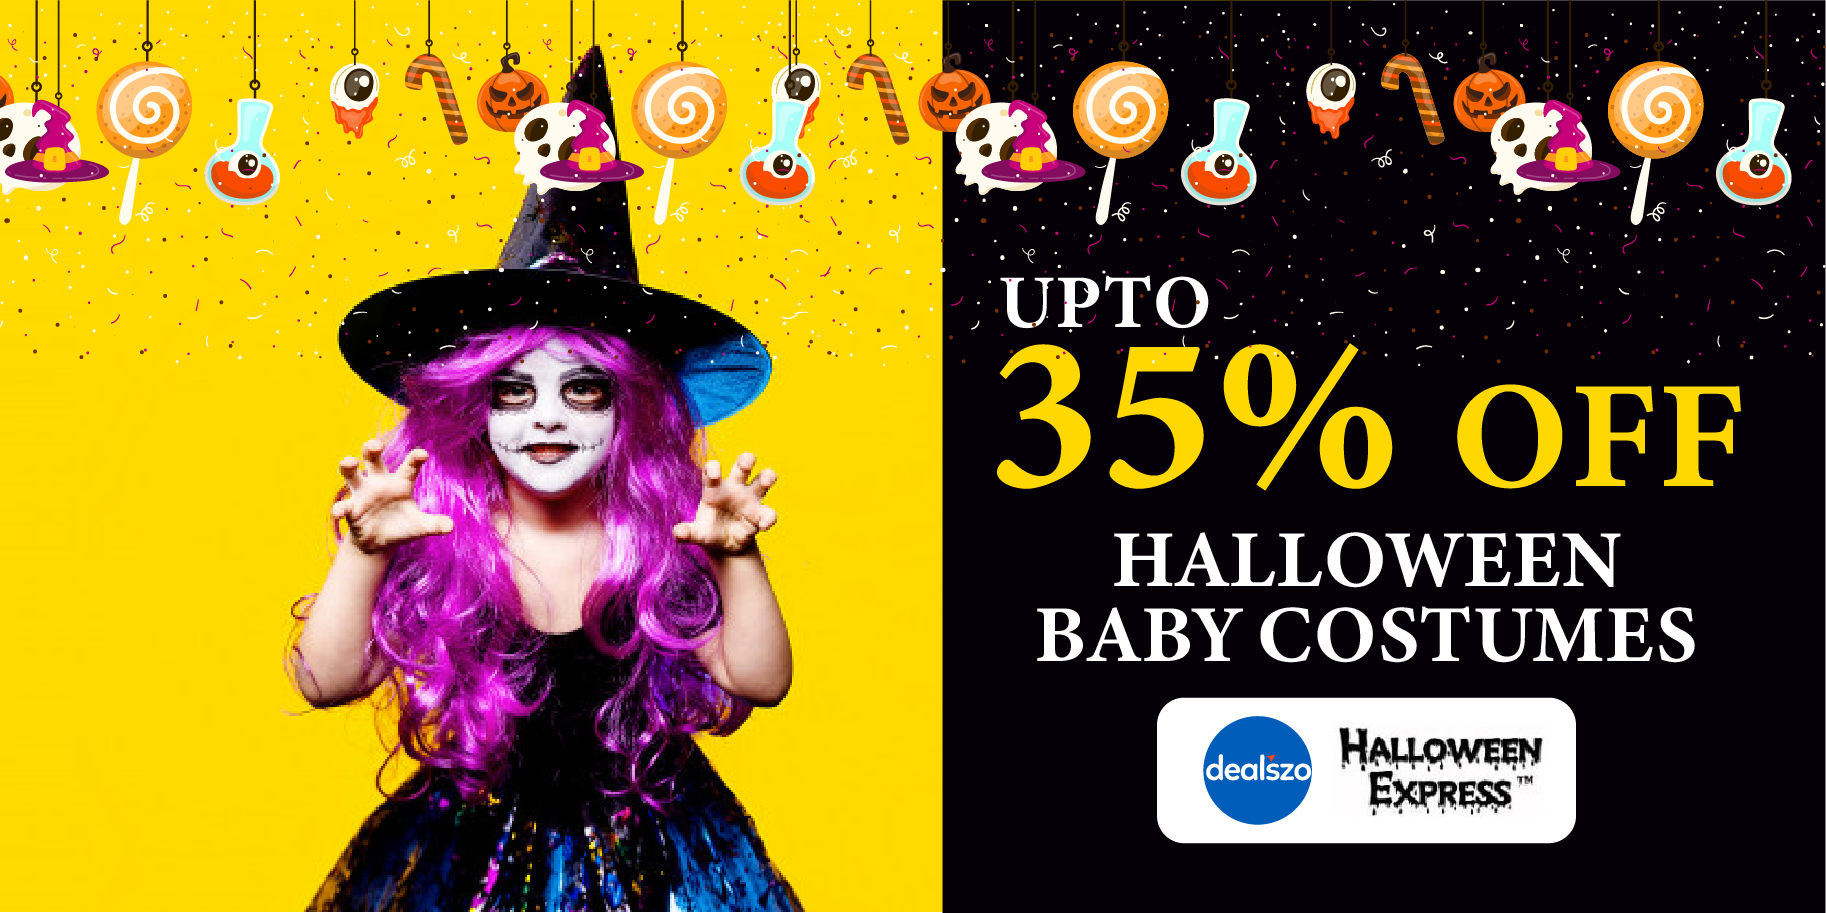 Pin On Halloween Special Coupon Deals